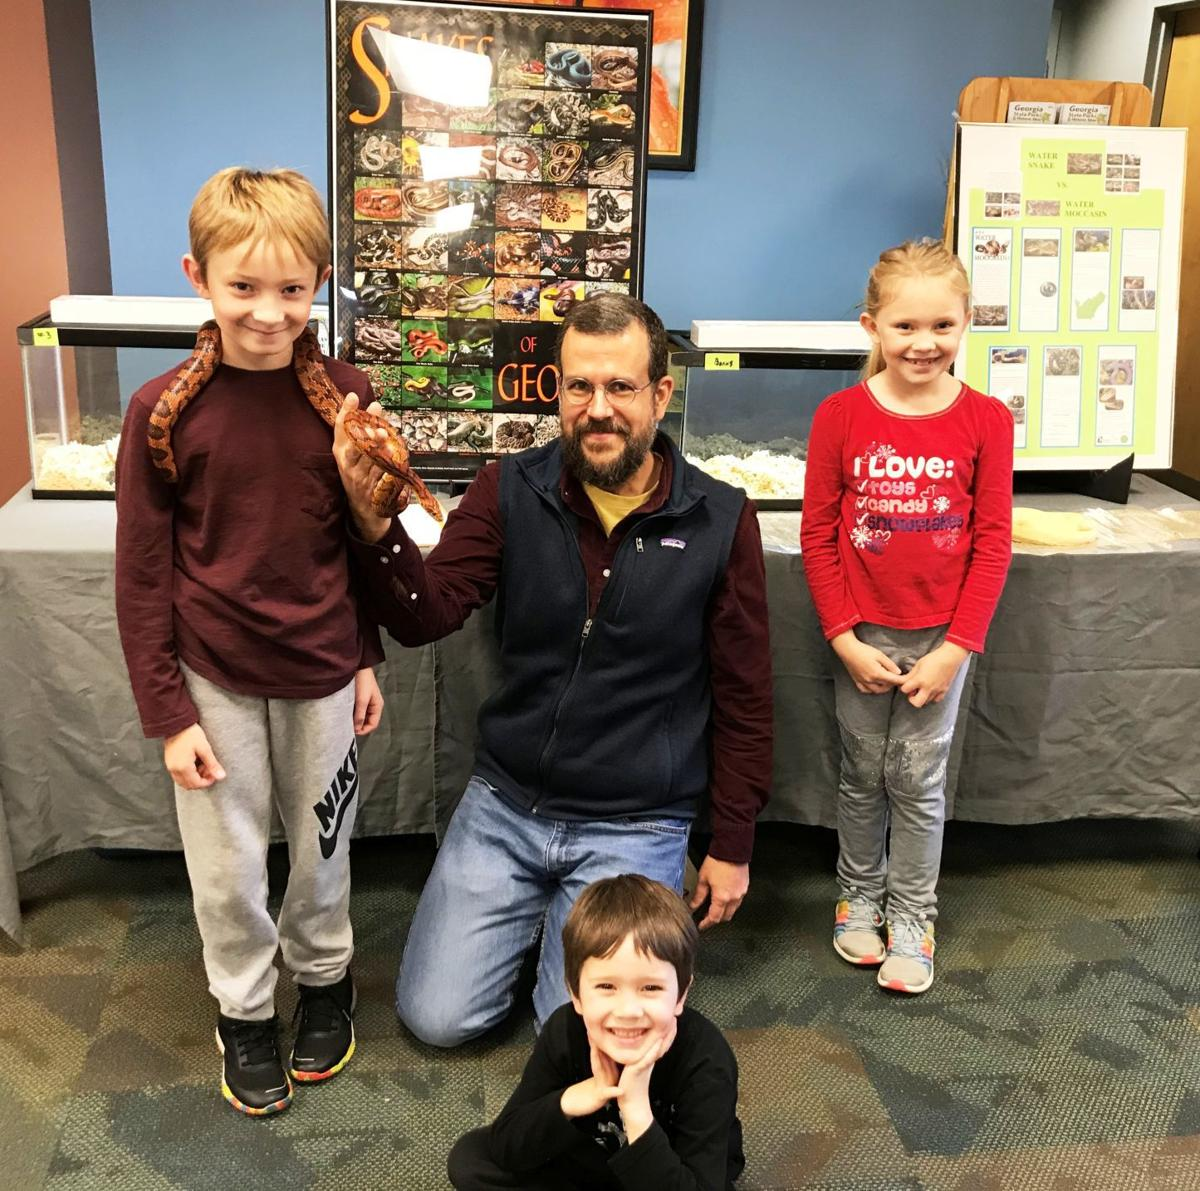 Reptiles at the library